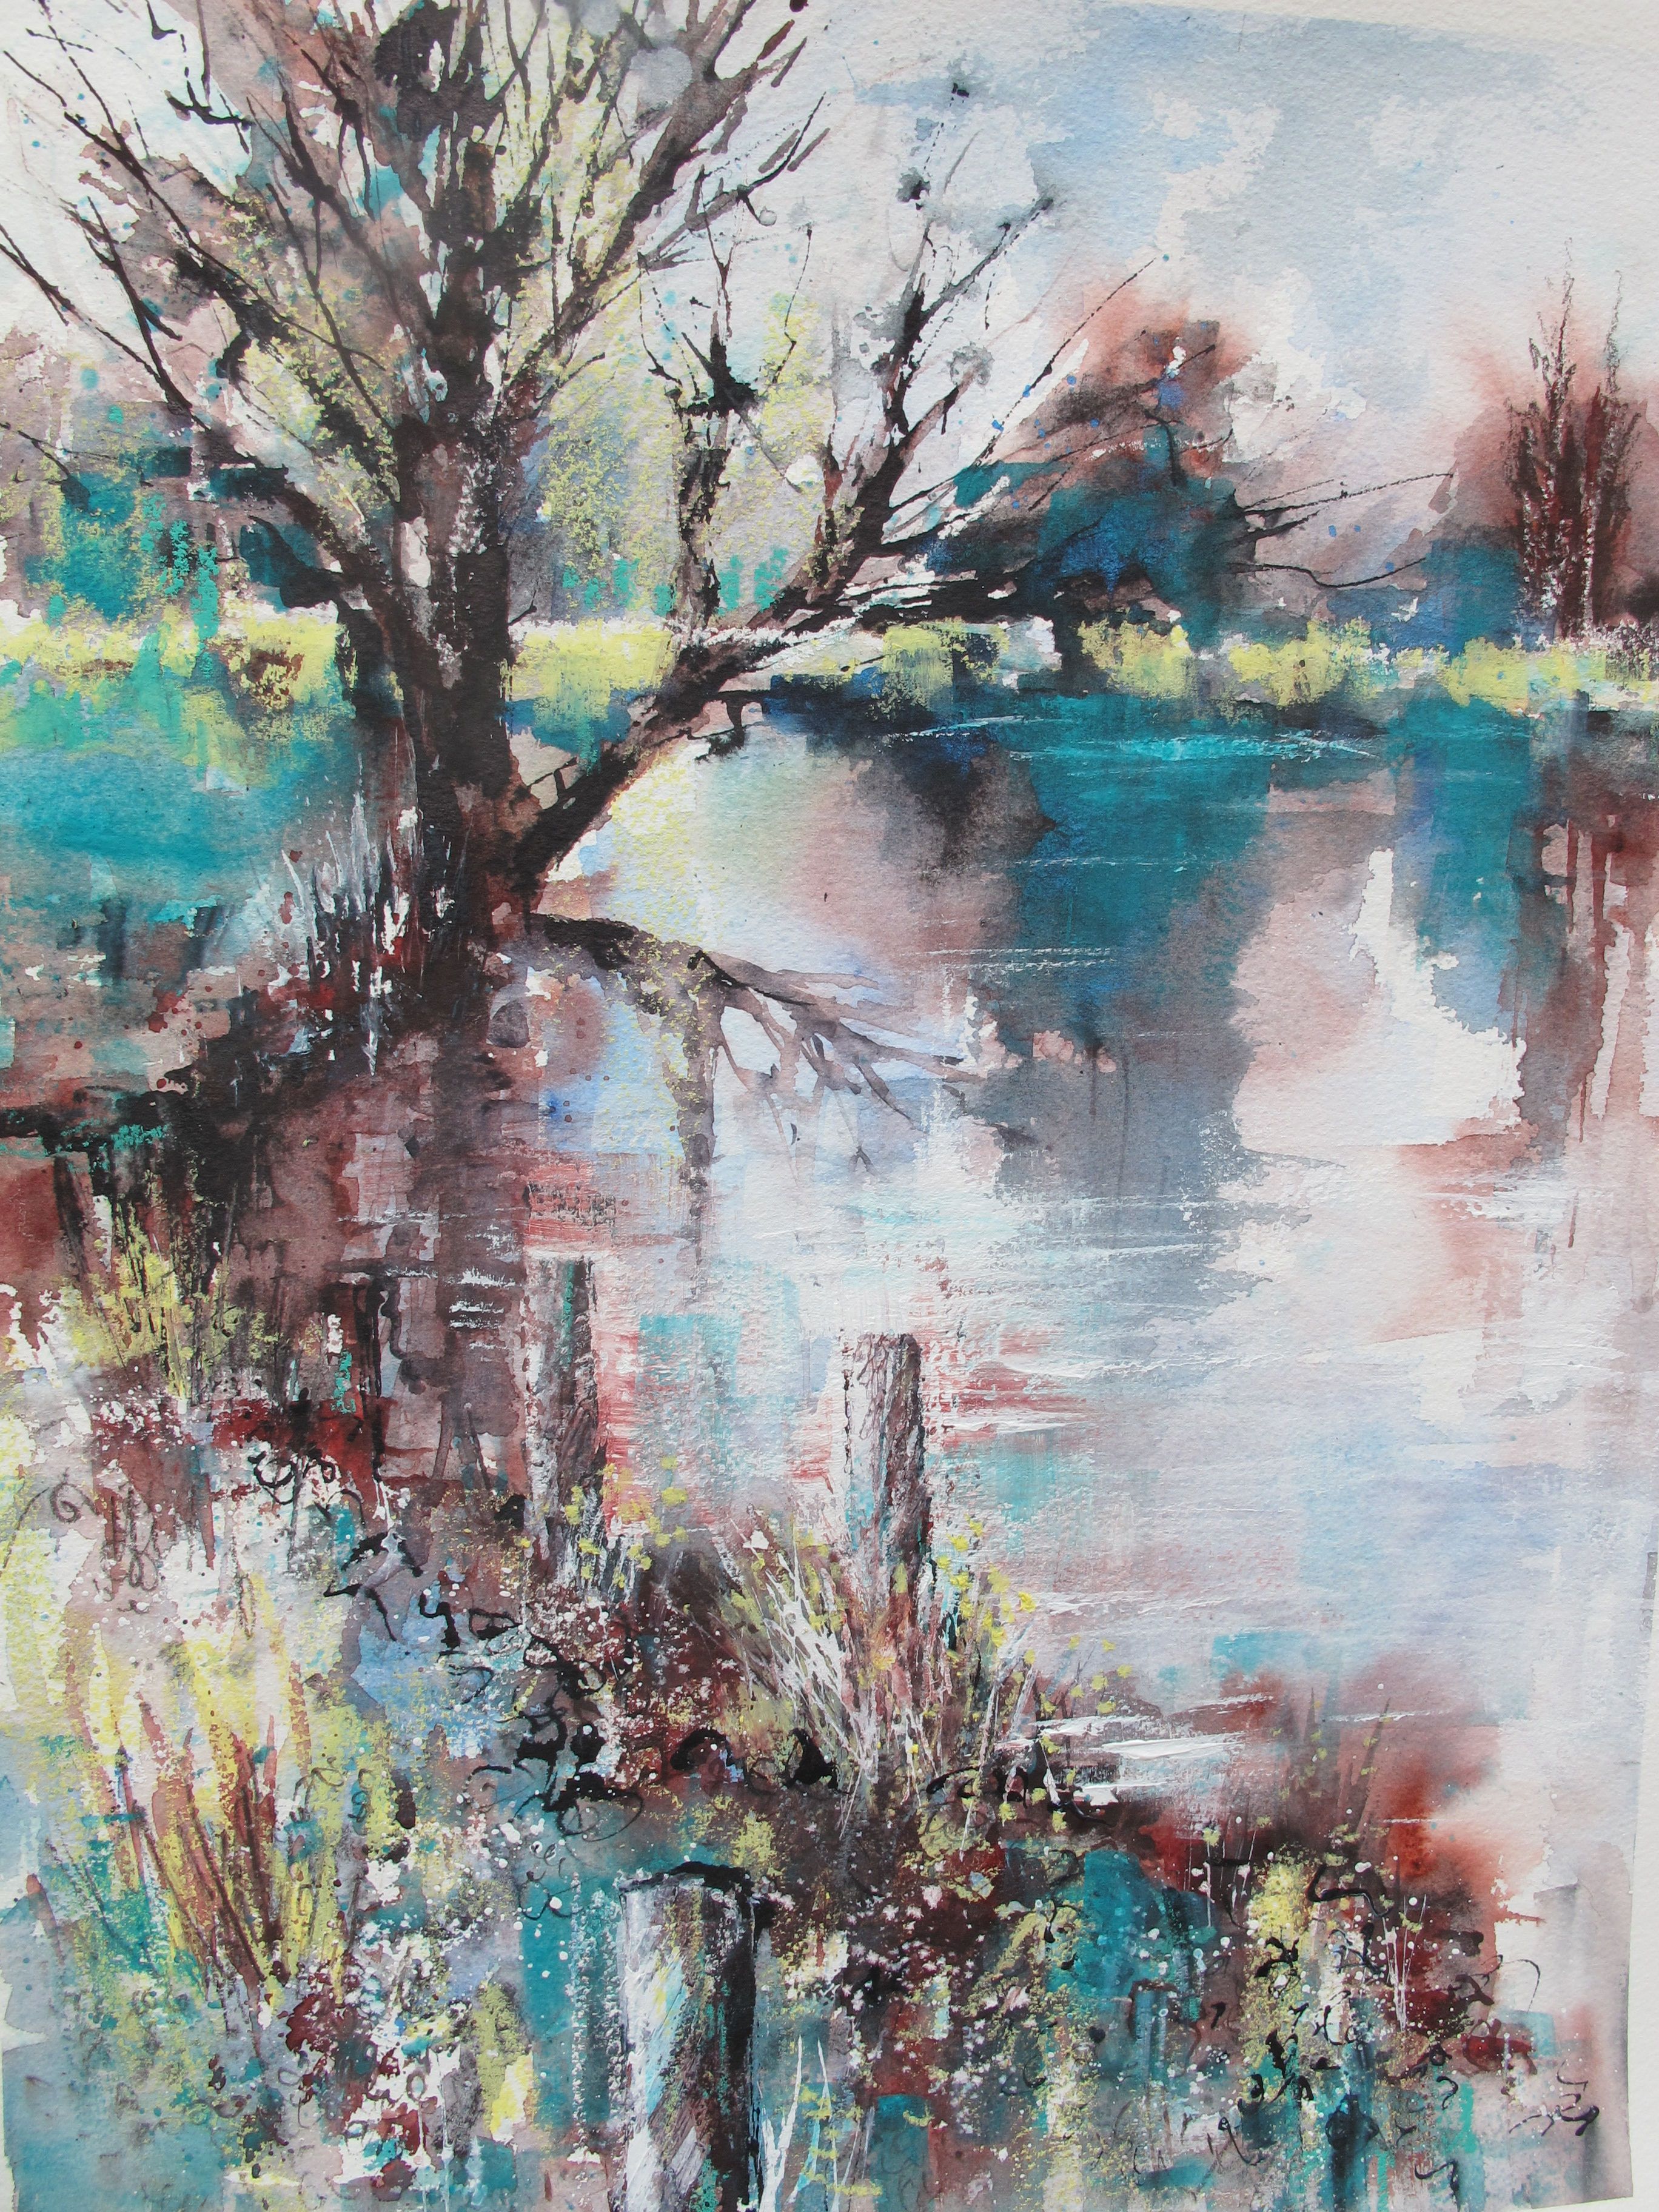 On a clear calm day, River Stour by Chris Lockwood